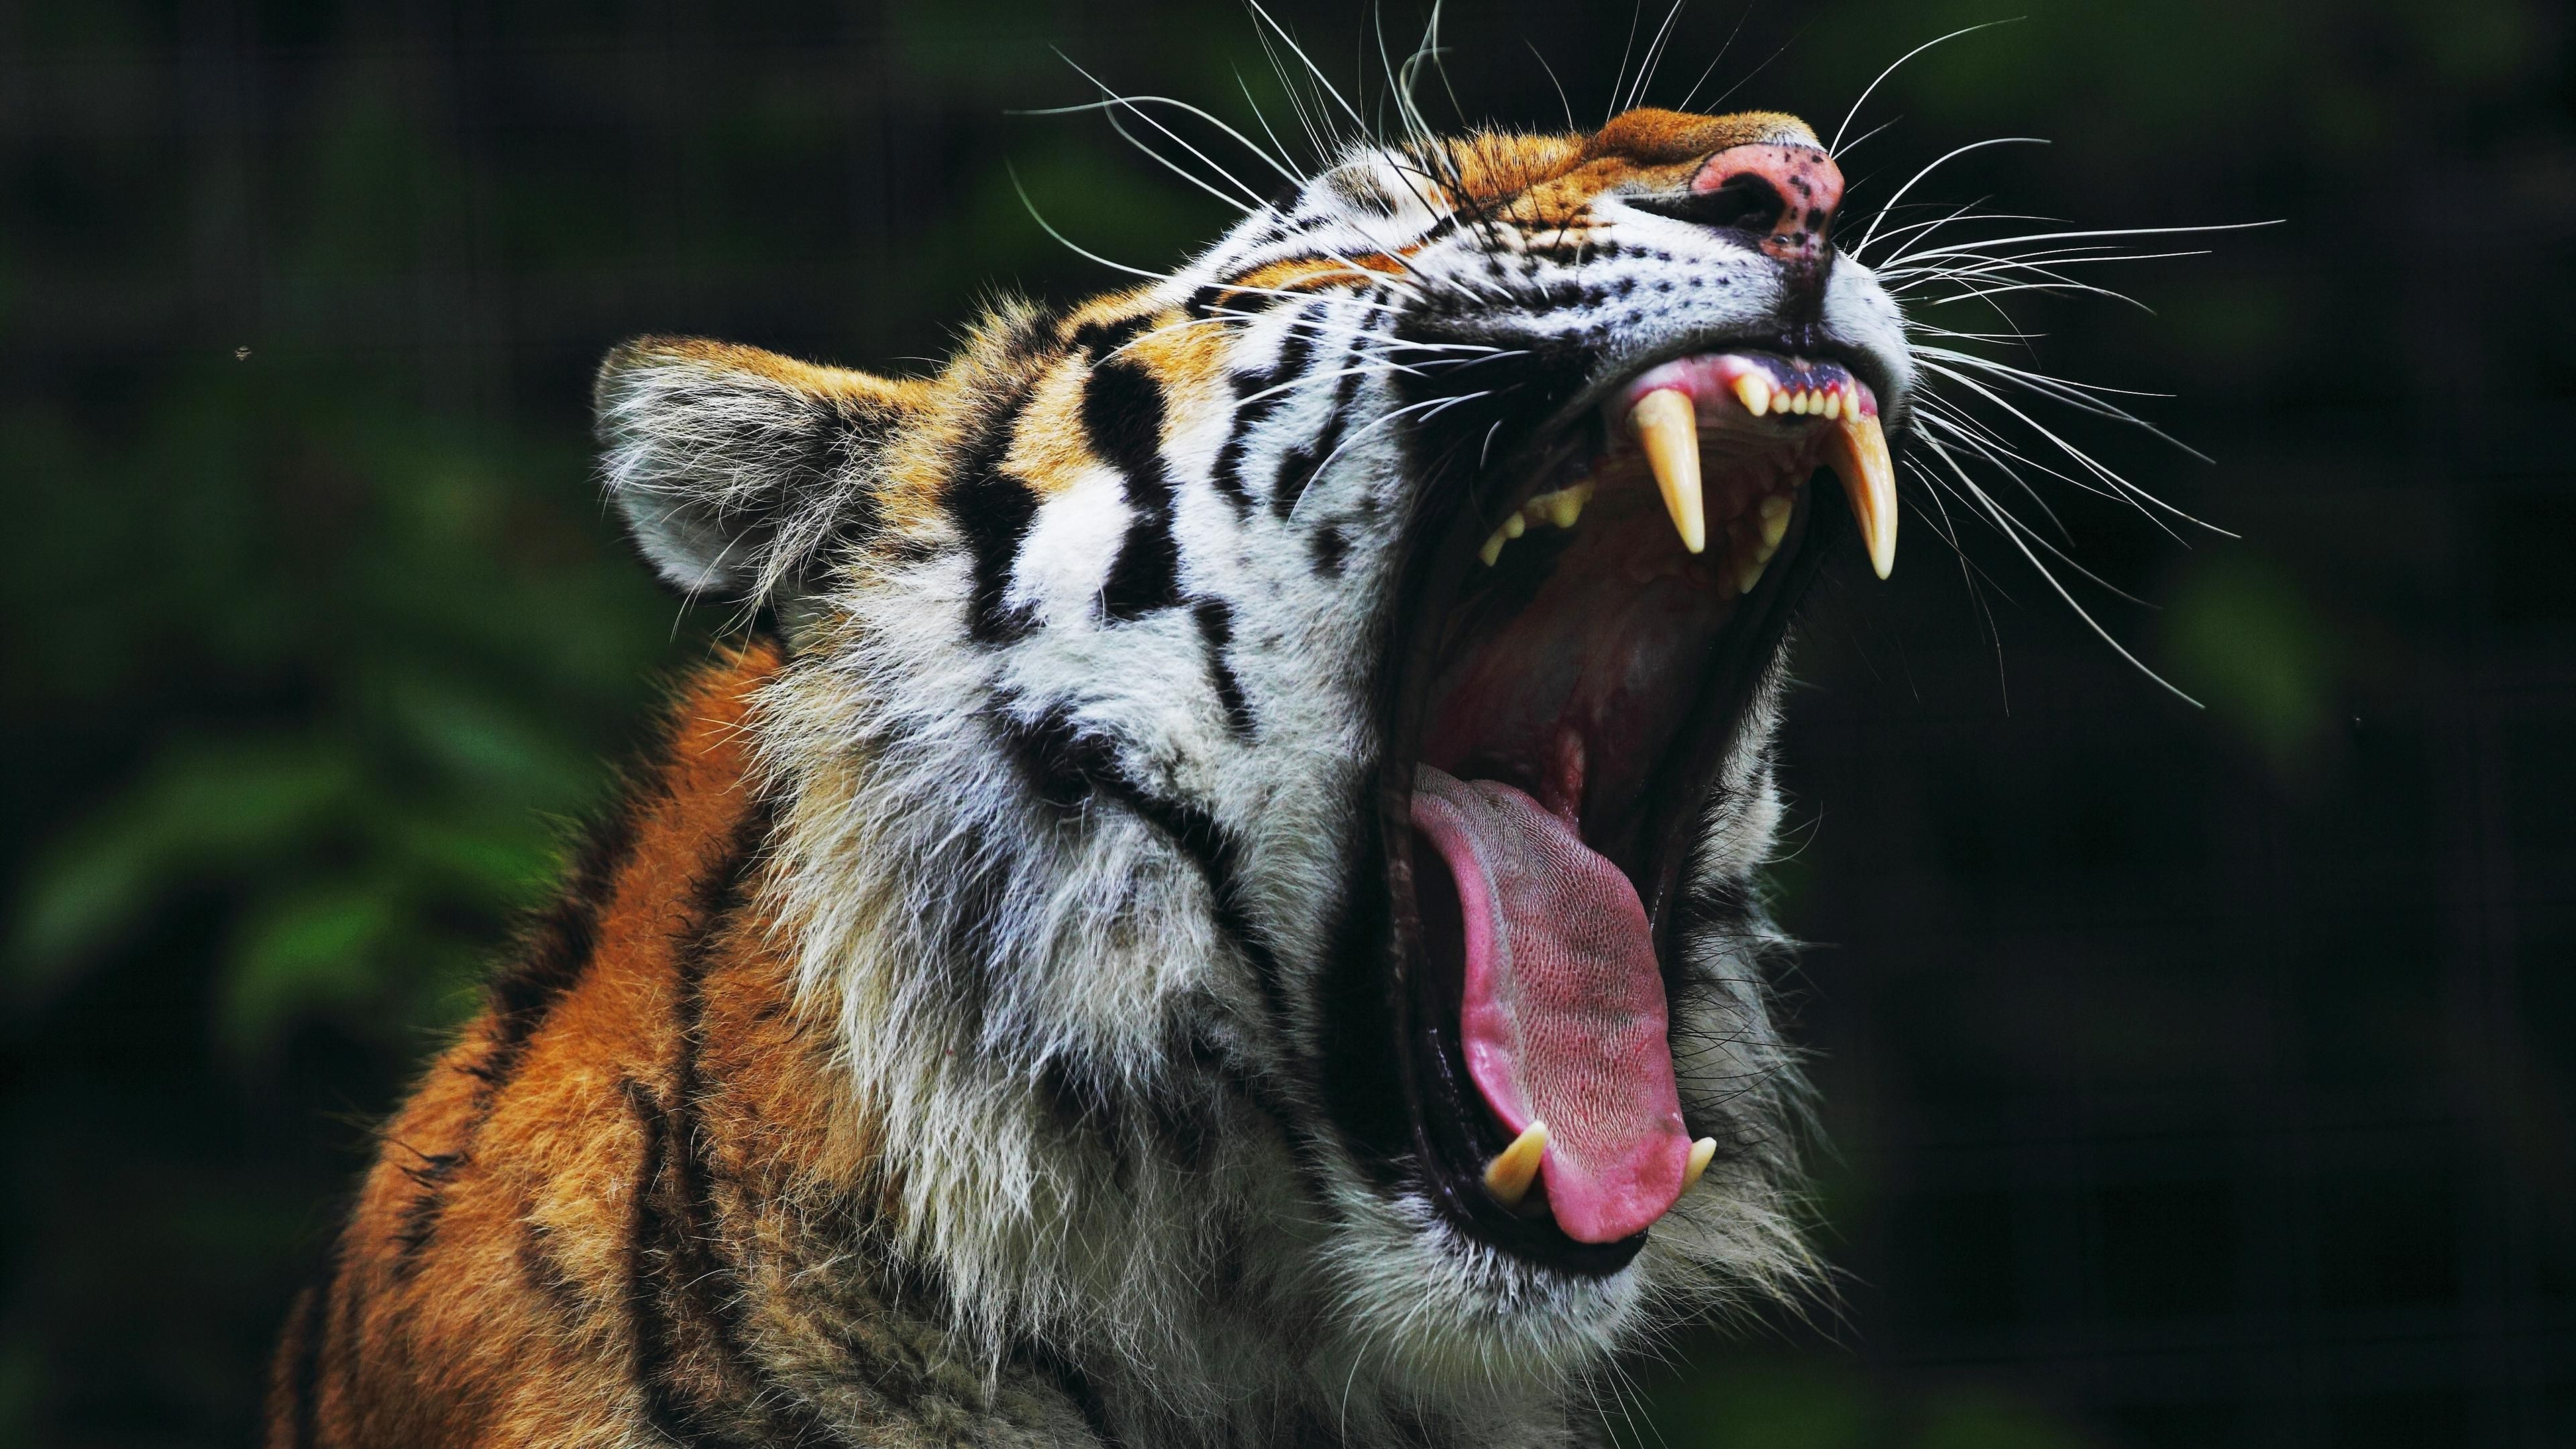 Buy Roar Tiger side view pictures picture trends